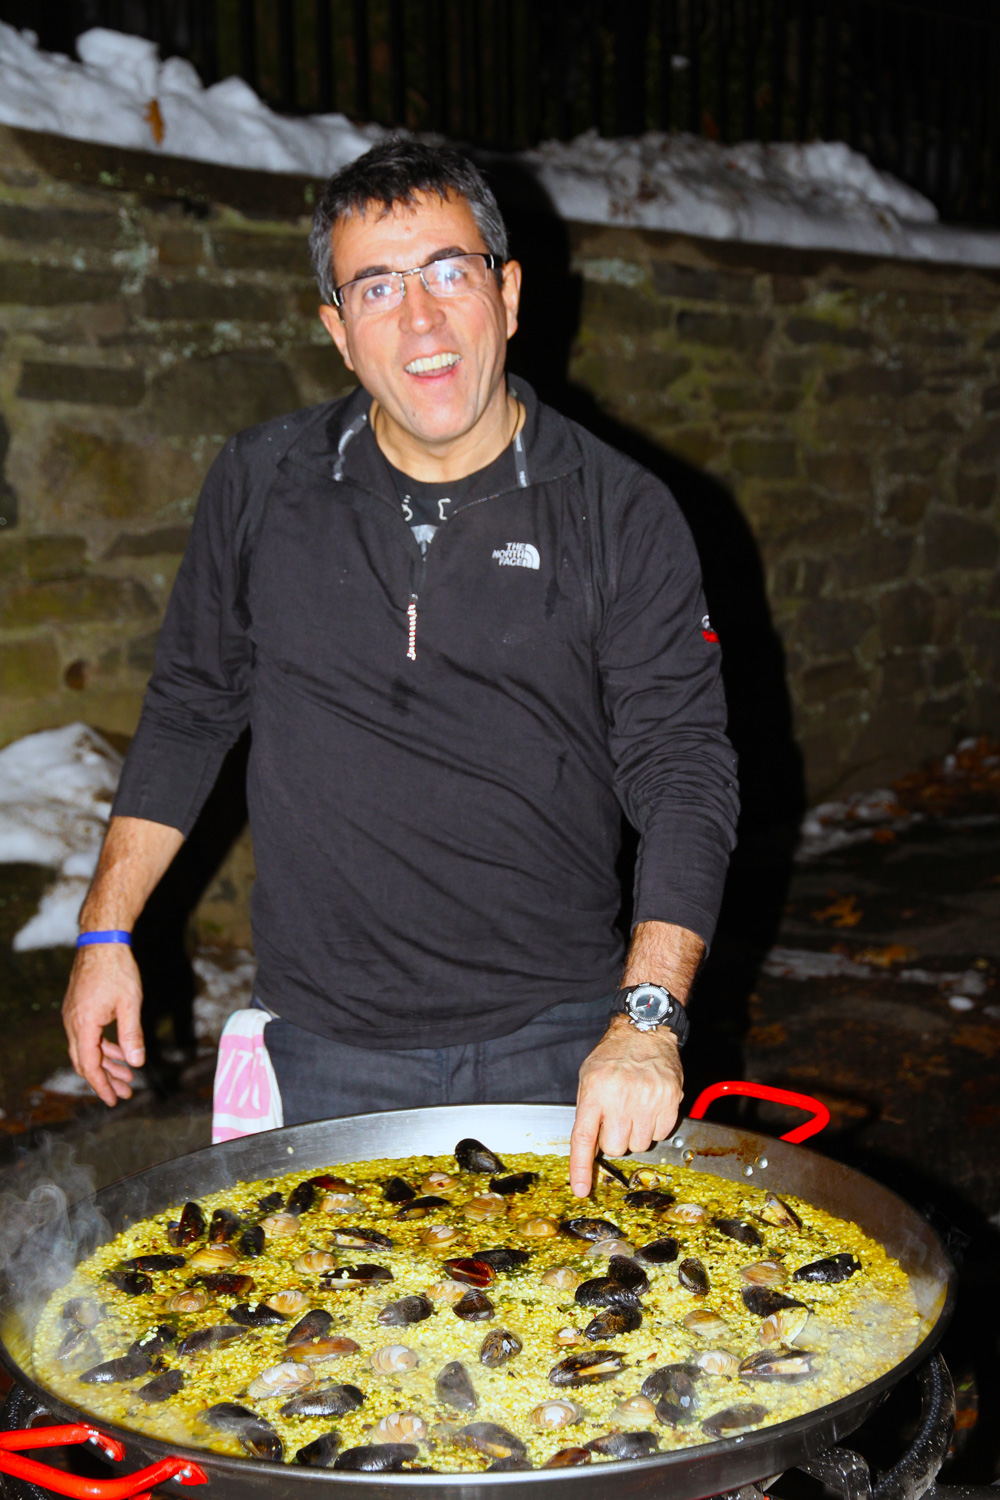 Yes, JuanCarlos was out in the snow cooking a paella!